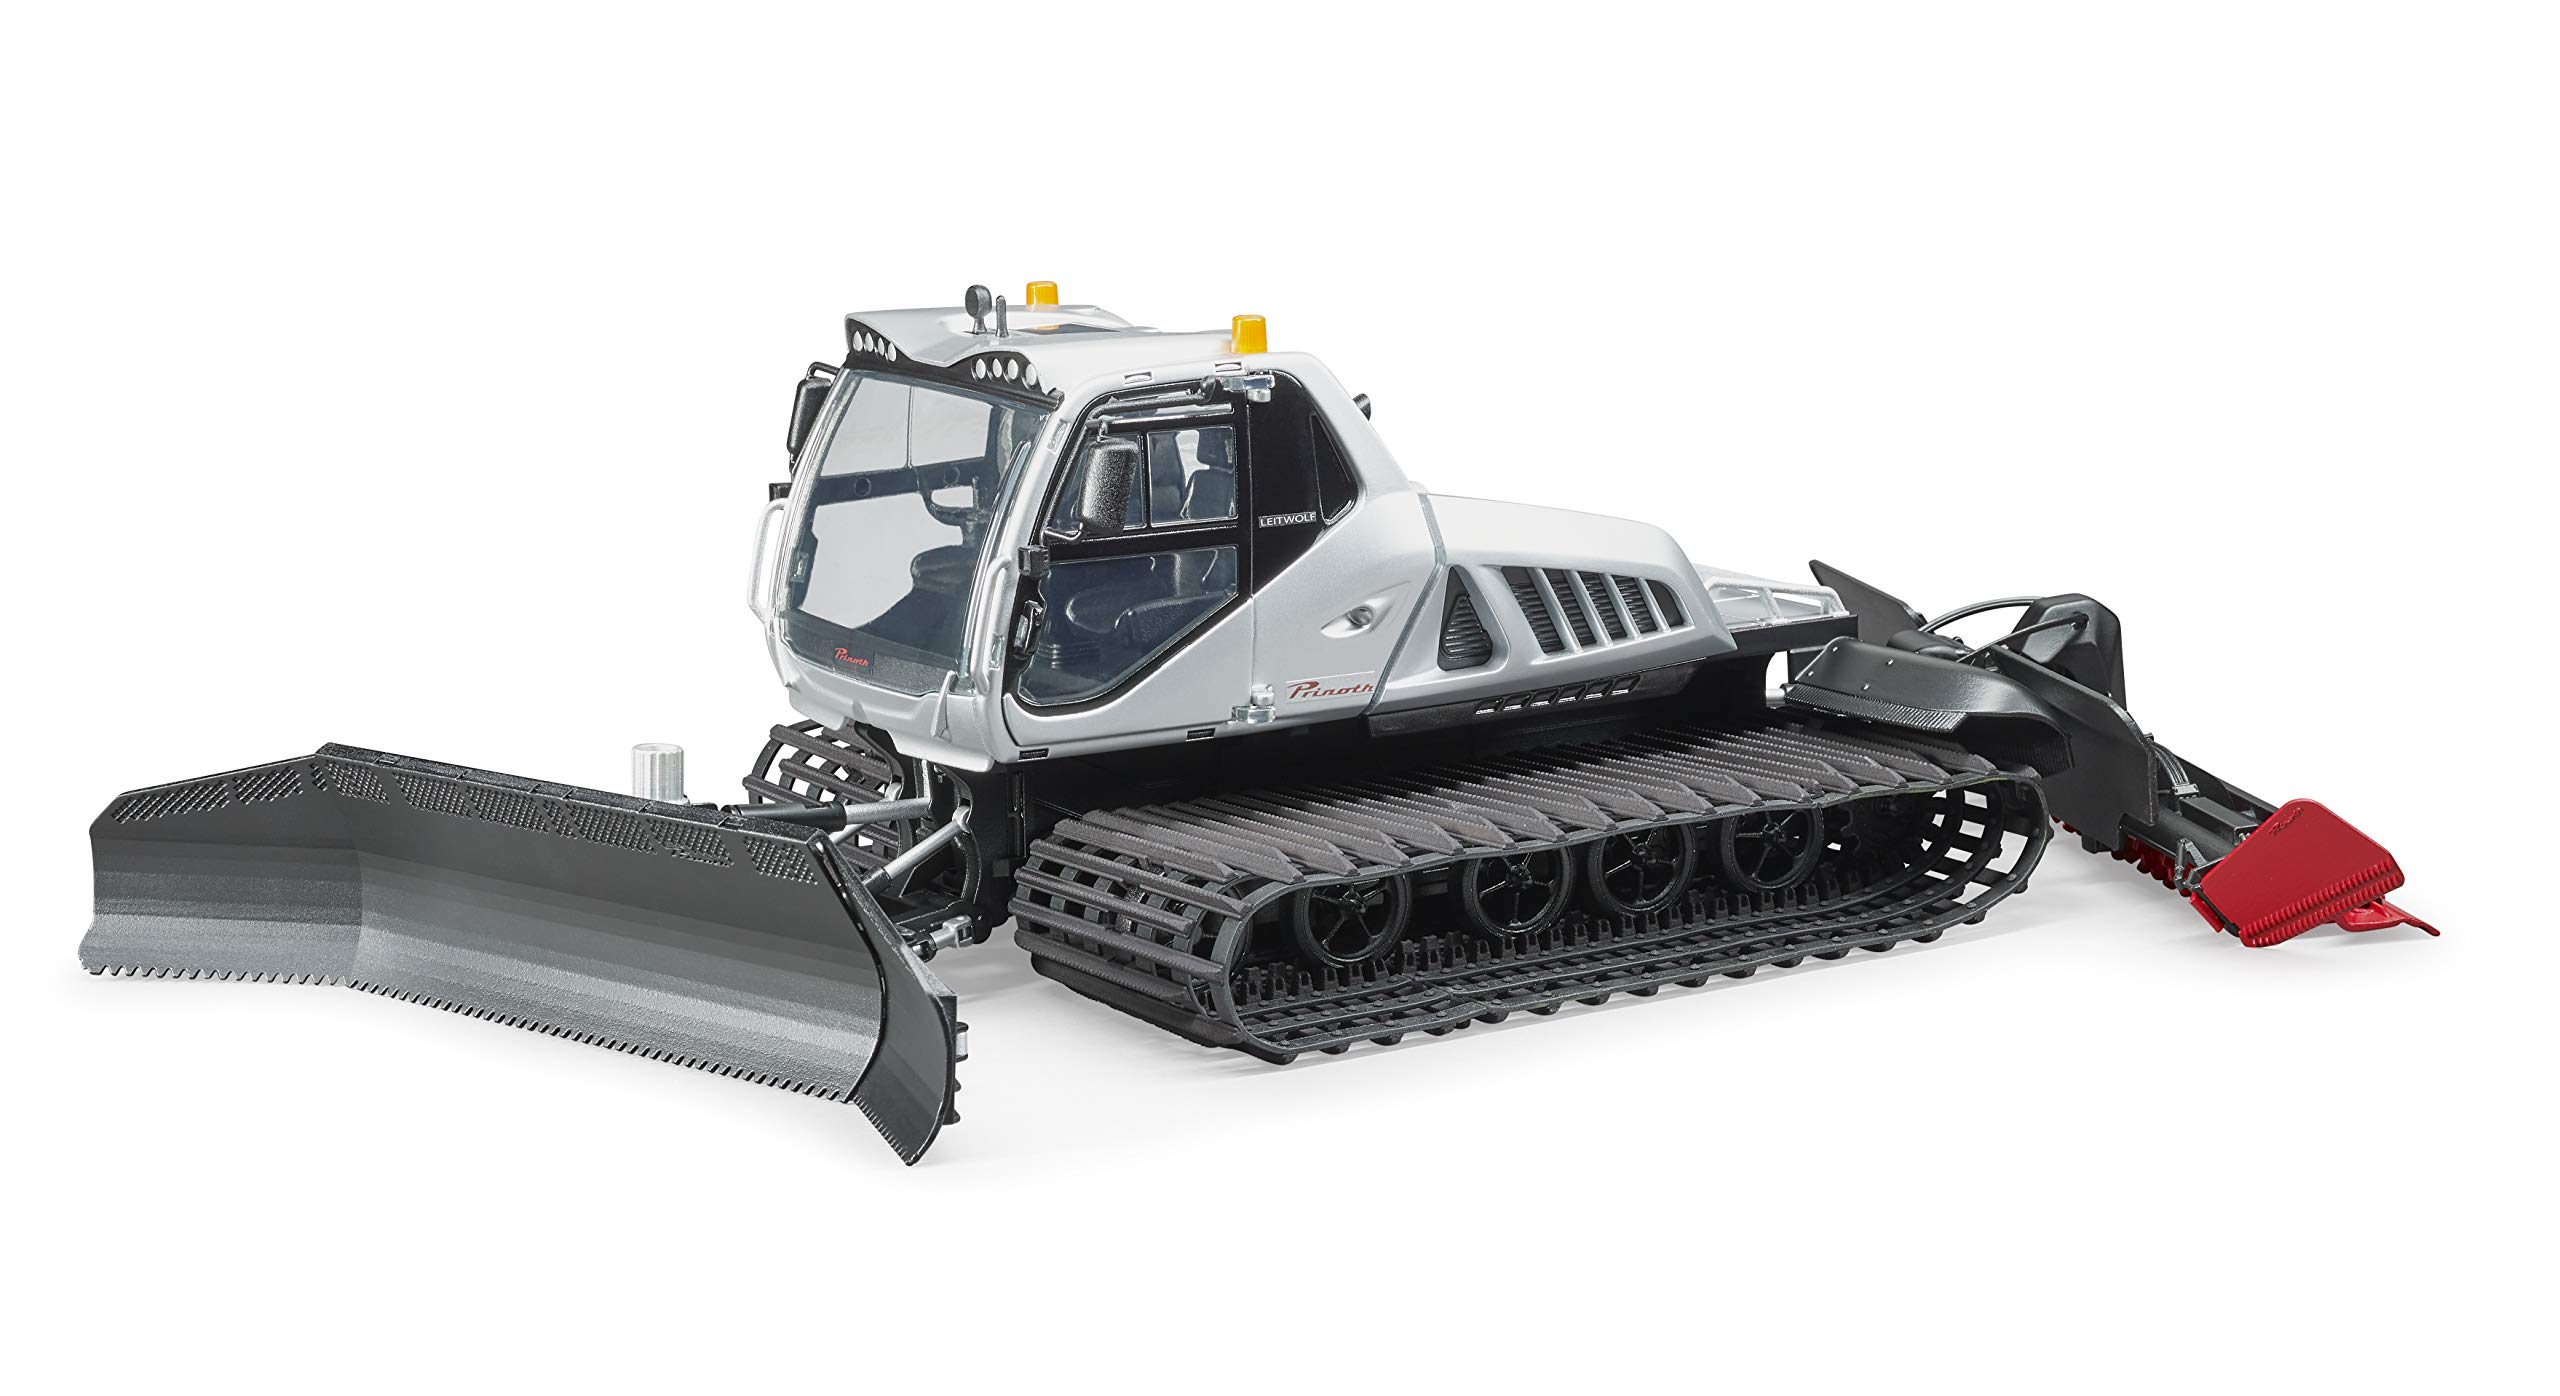 Bruder Toys Prinoth Snow Groomer Leitwolf by Bruder Toys (Image #1)